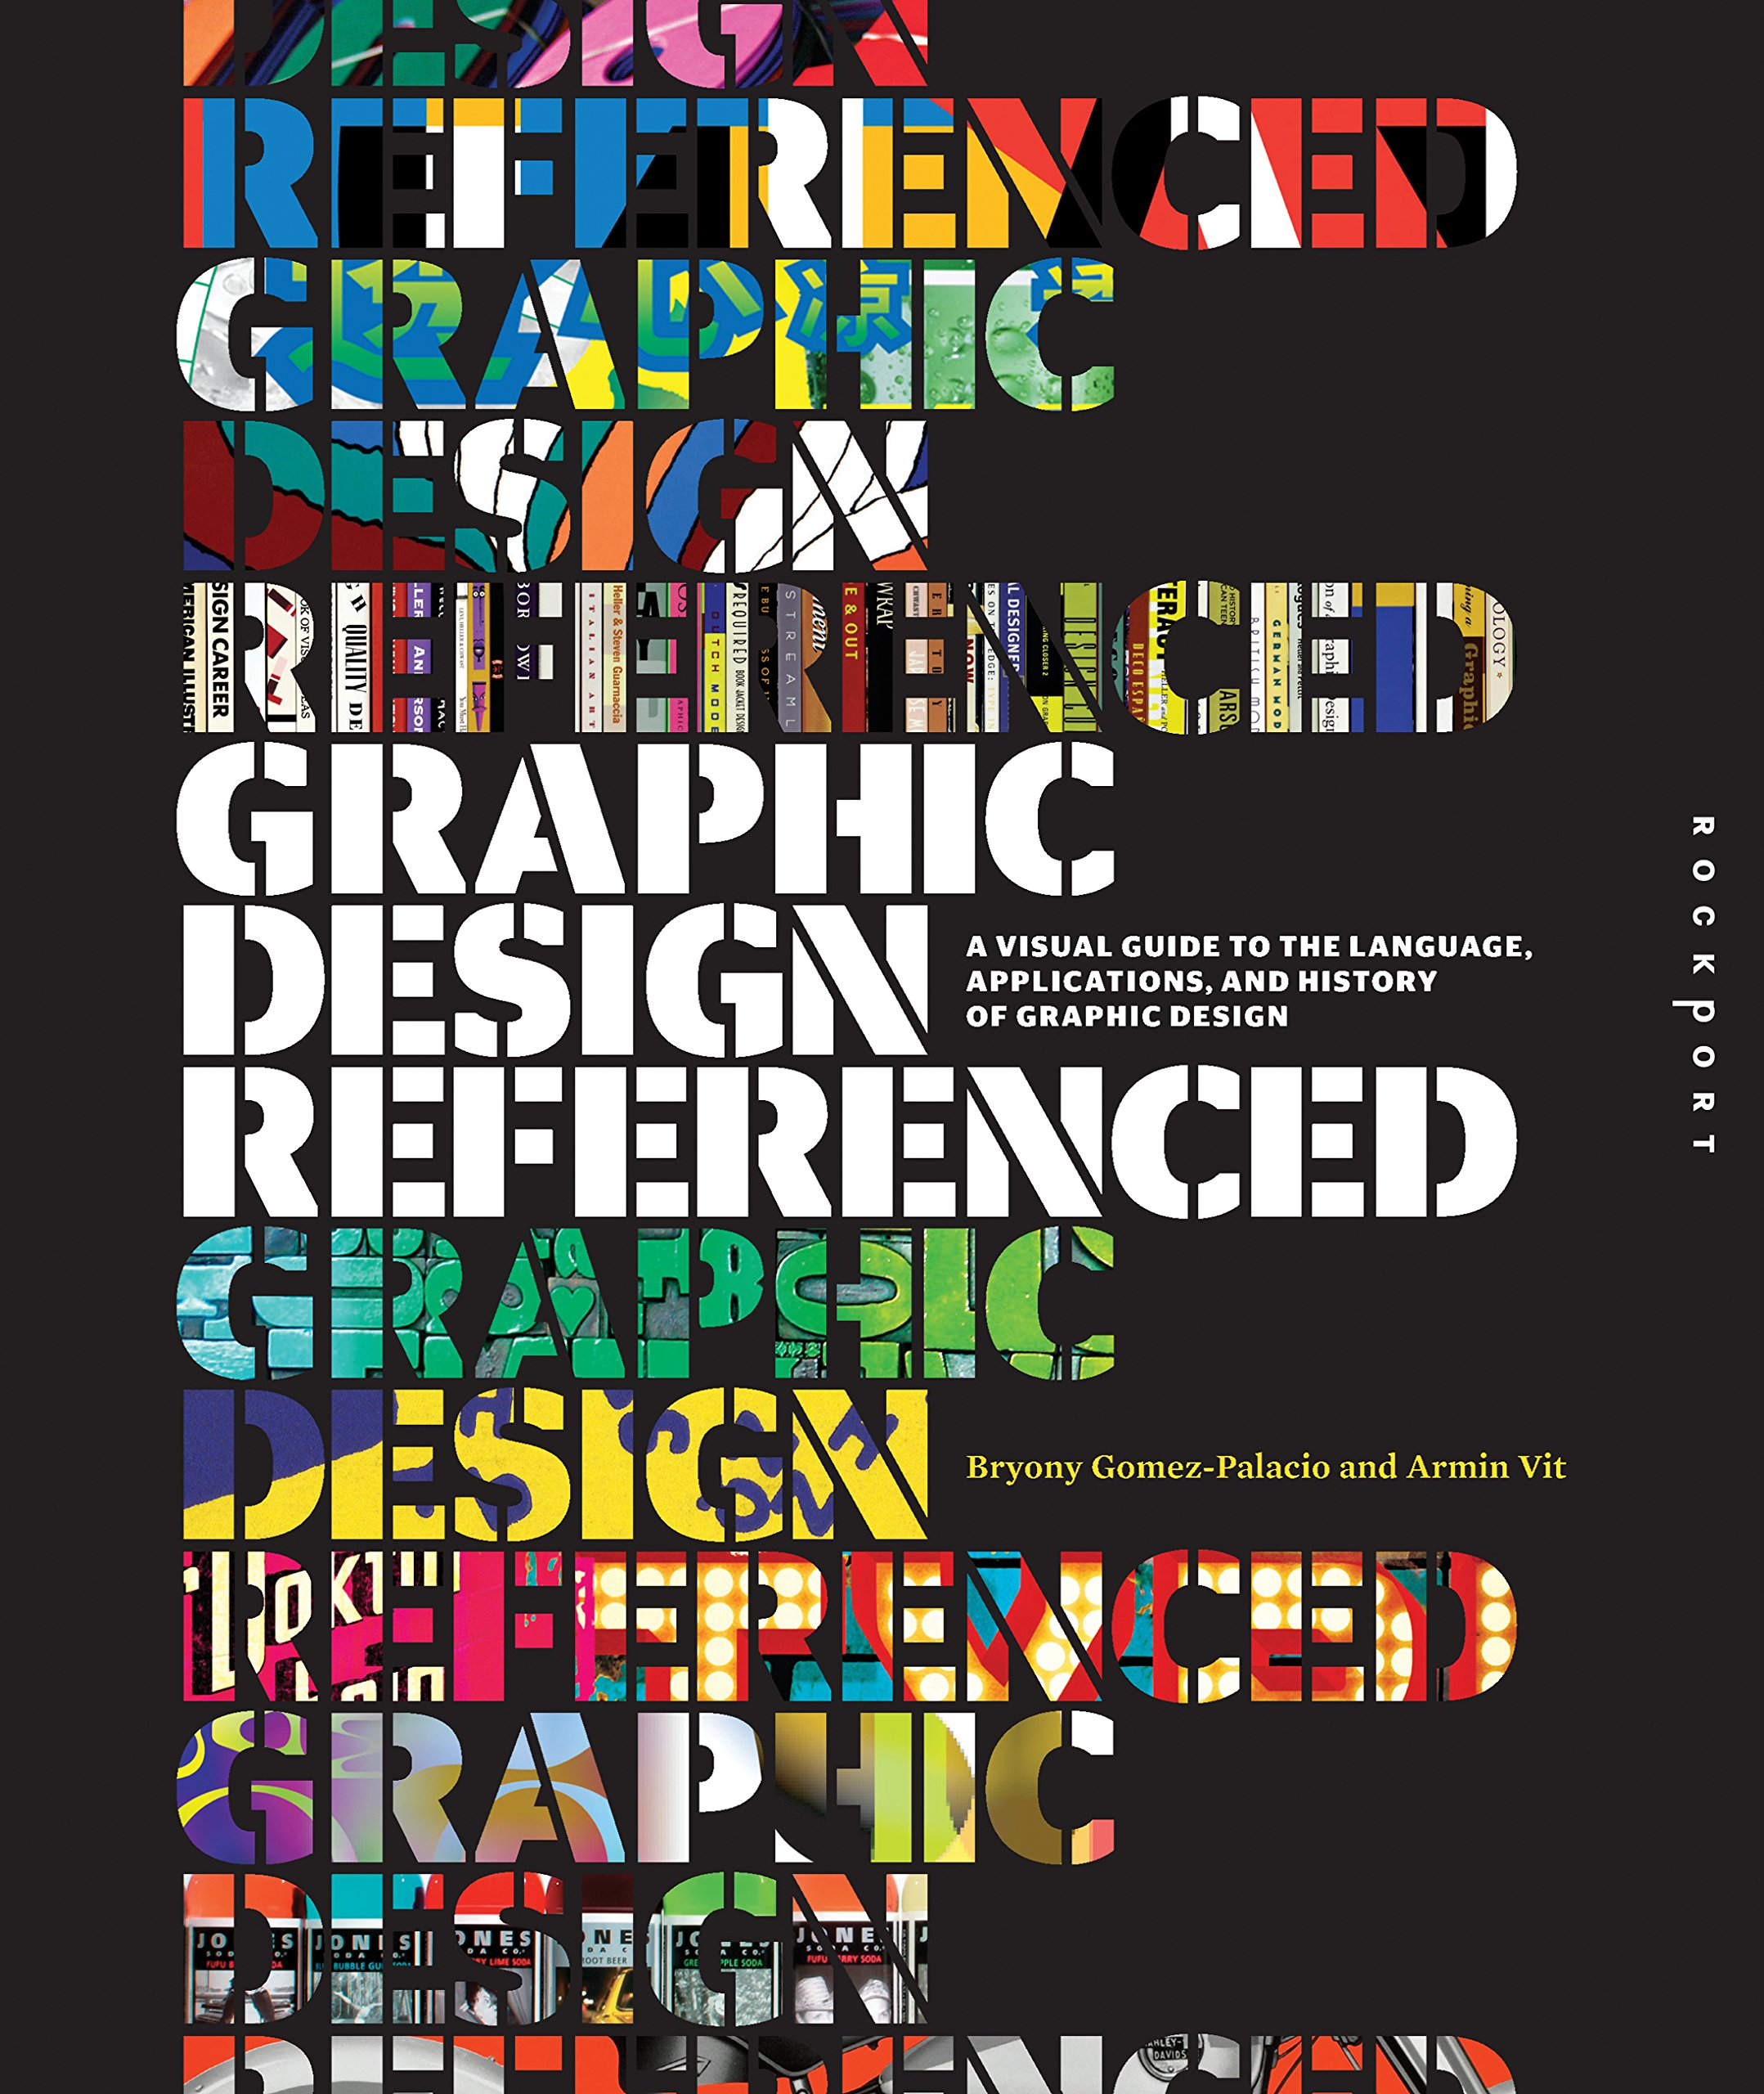 Graphic Design, Referenced: A Visual Guide to the Language, Applications, and History of Graphic Design PDF